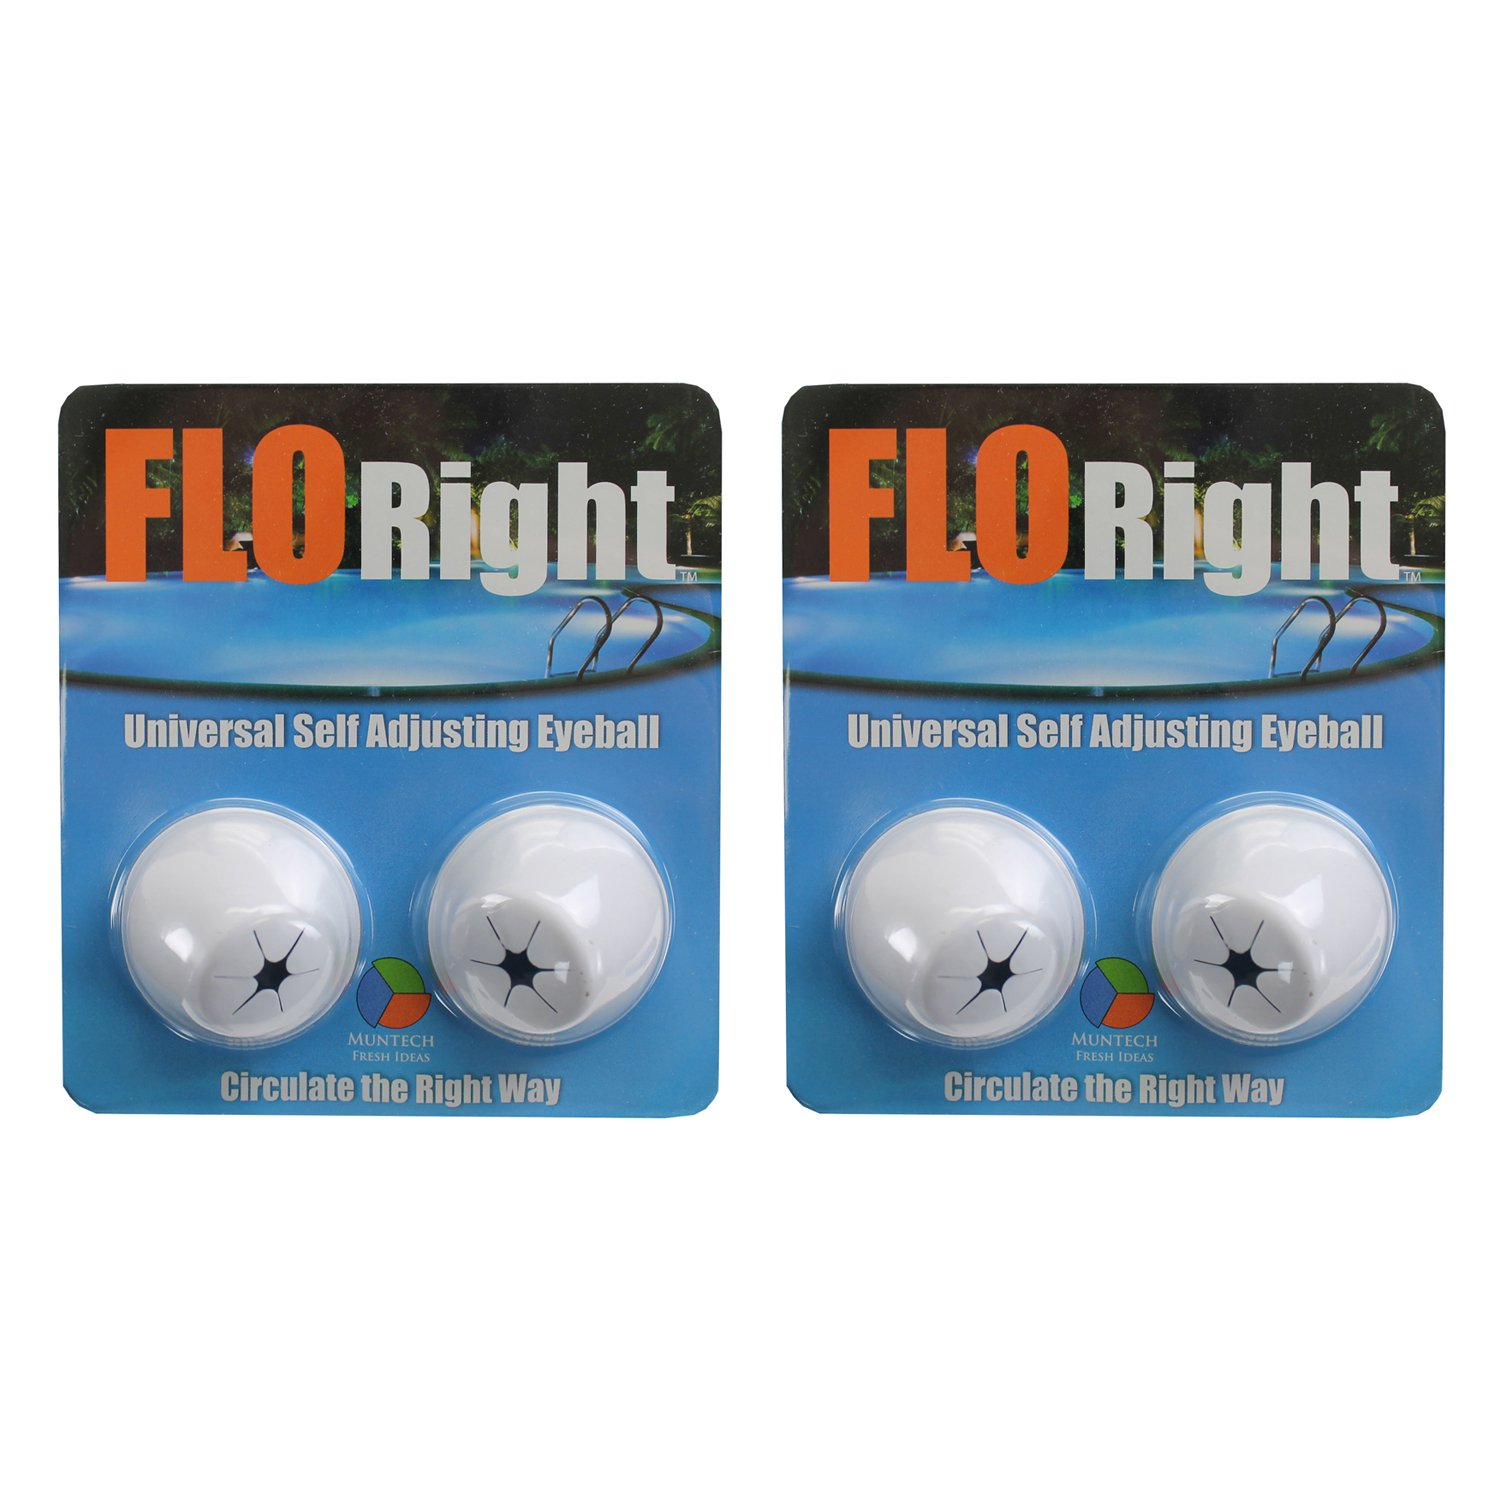 FLORight Pool Universal Self Adjusting Eyeball Replacement Circulation (2 Pack)